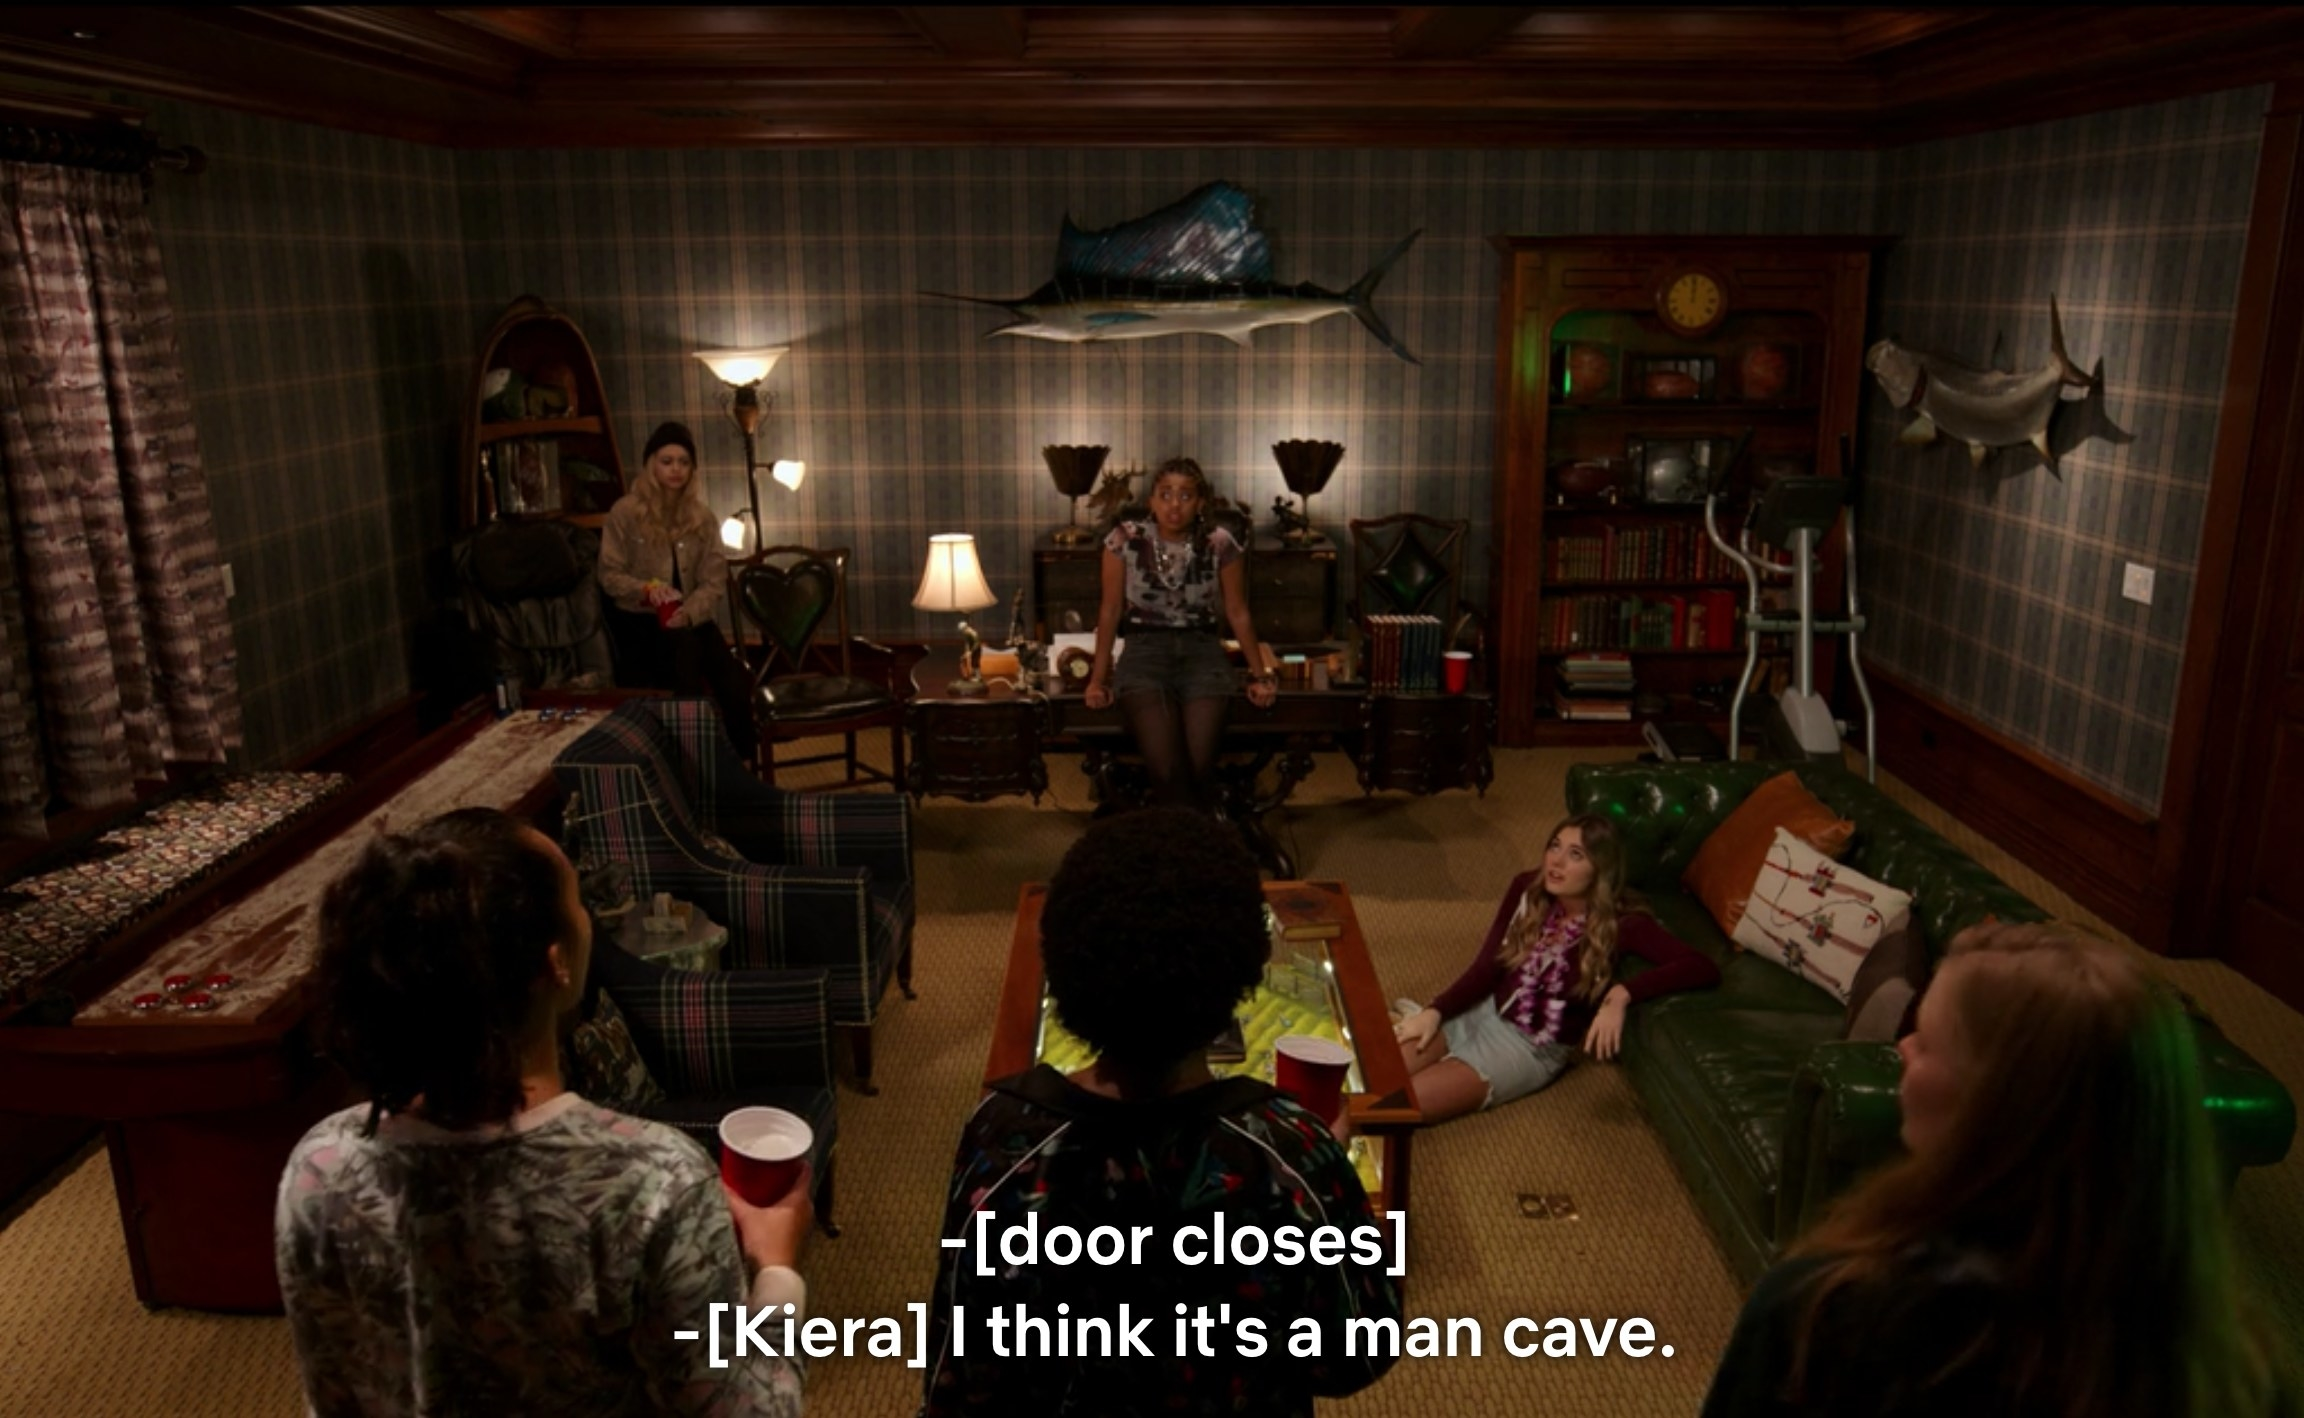 """Girls in the Moxie club gather in a dim room with plain, drab decorations, and Kiera says, """"I think it's a man cave"""" as the door closes"""